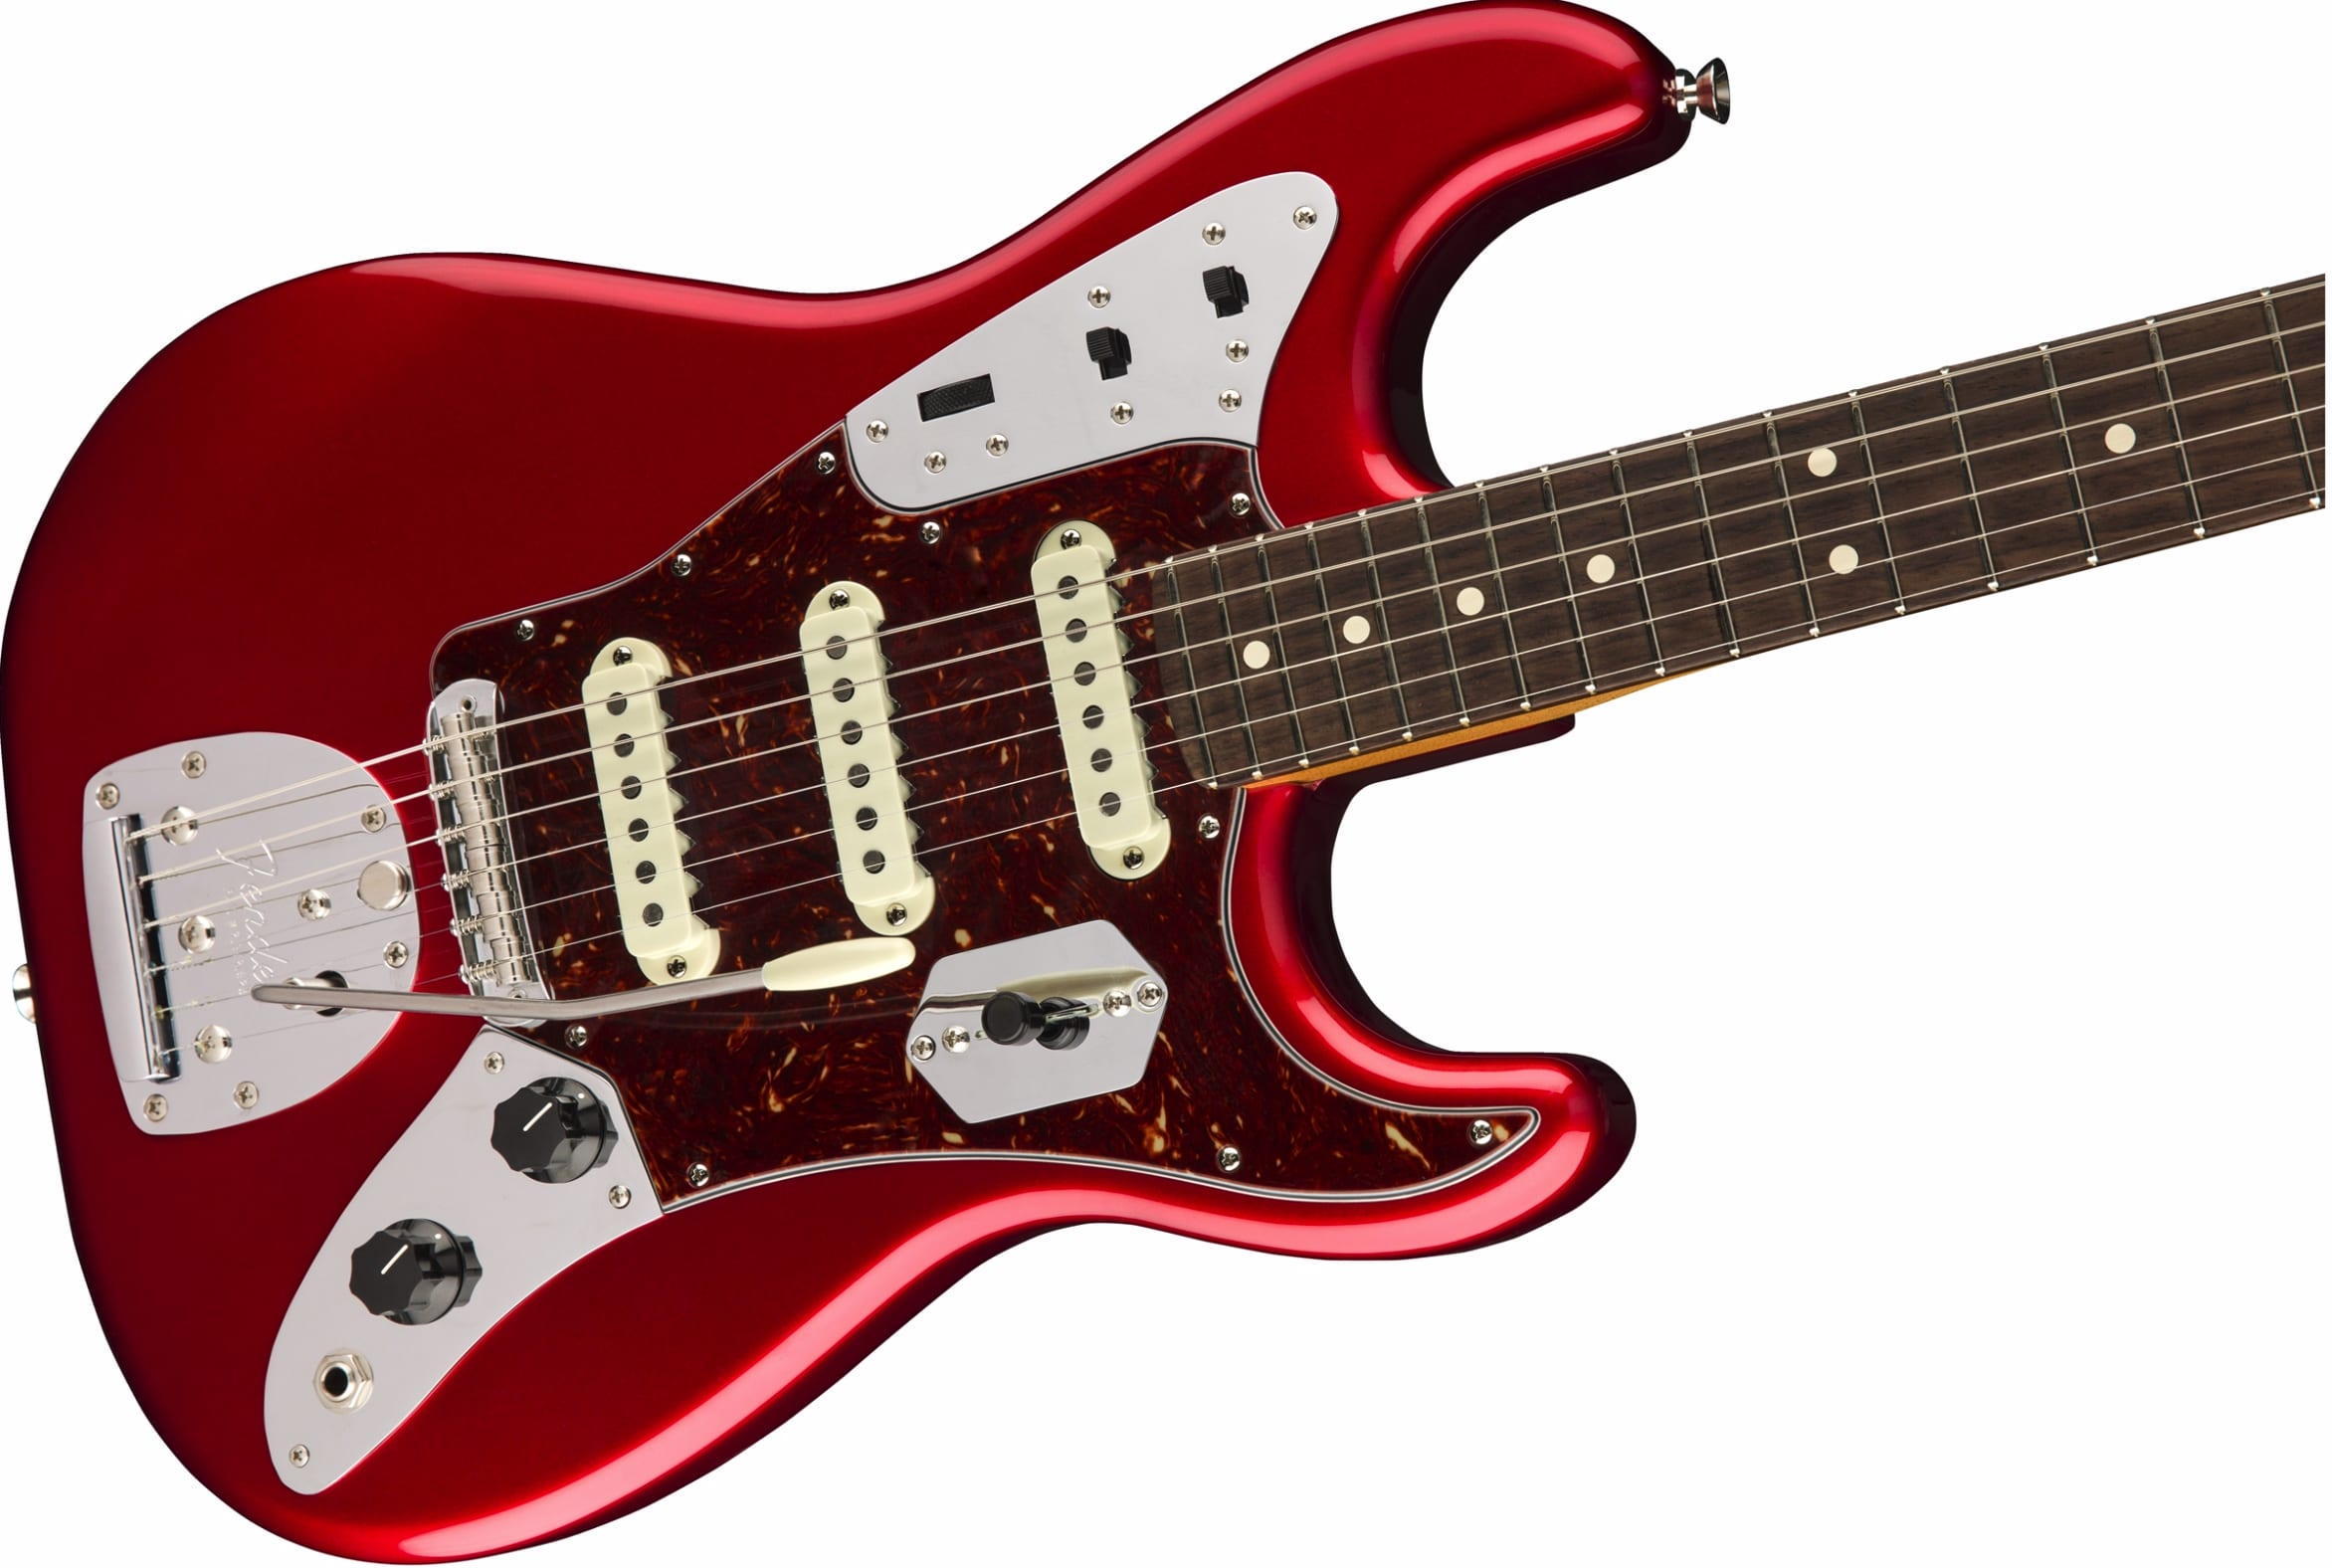 Fender Jaguar Strat with Jaguar style trem